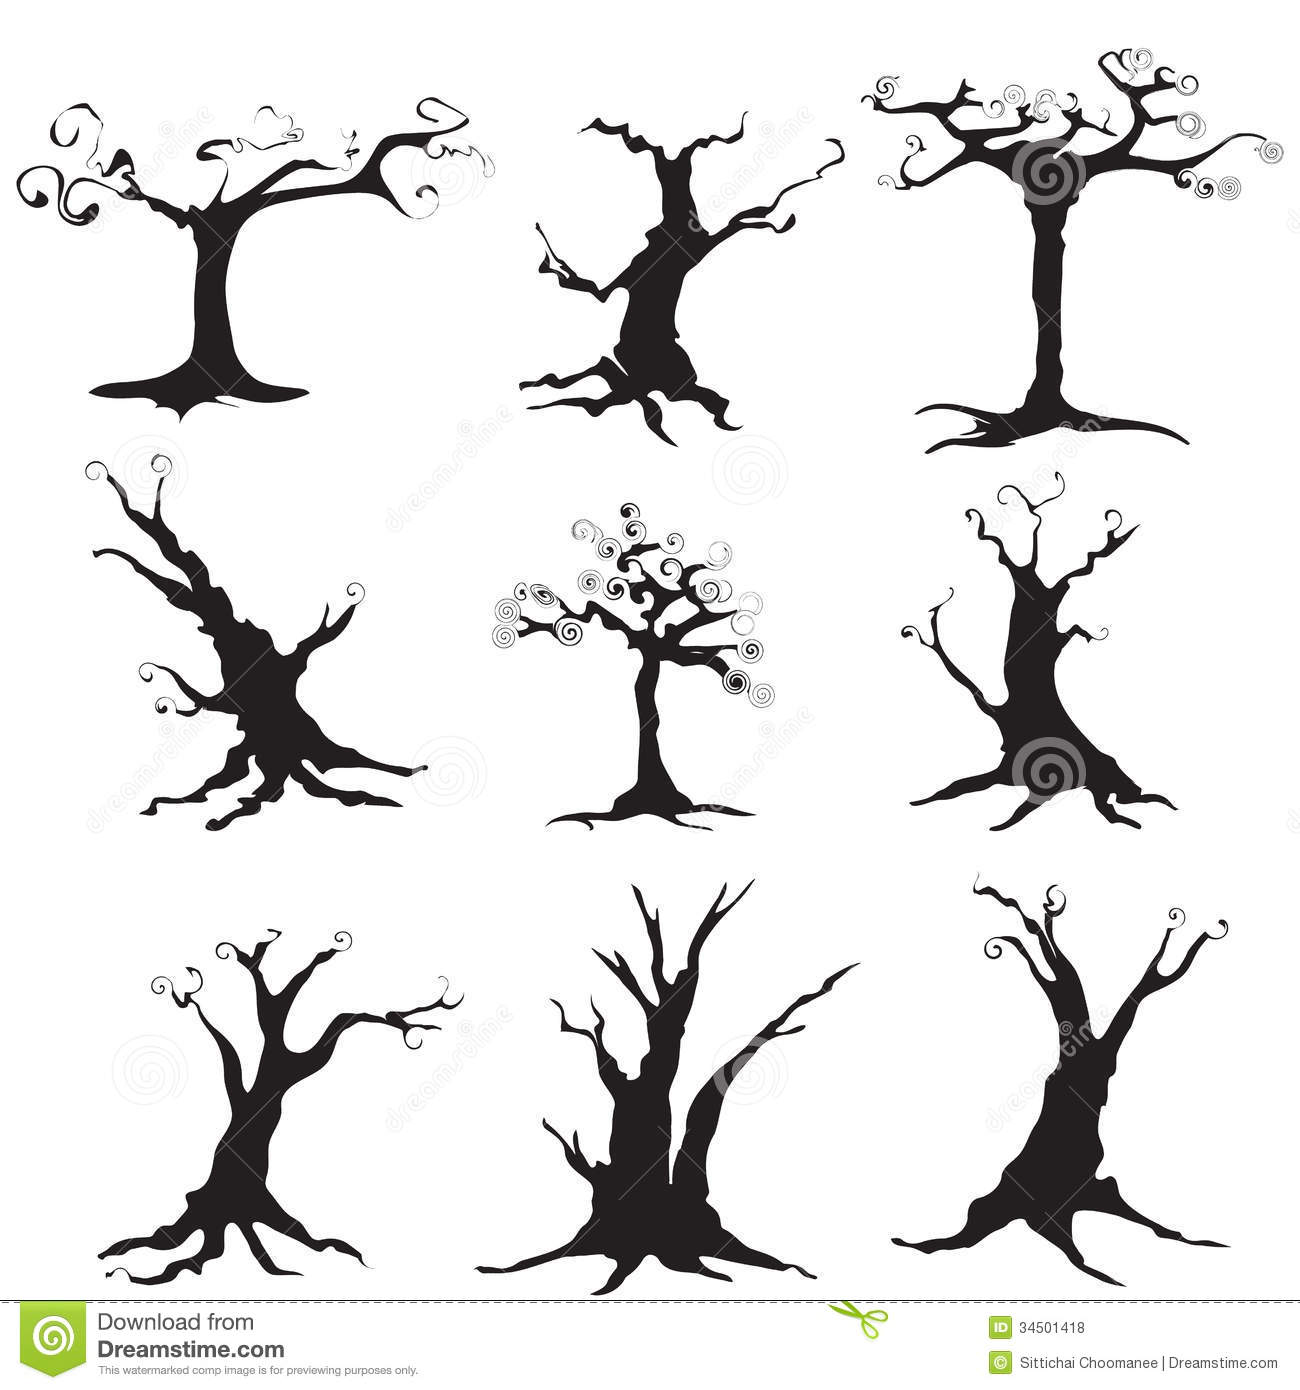 Halloween Spider Web Background 10263 also Royalty Free Stock Photos Tree Silhouette Isolated White Background Collection Trees Silhouettes Decoration Halloween Image34501418 also Coloriage Maison Interieur I25995 moreover Toco Toucan likewise Drawing Ste unk. on scary forest cartoon